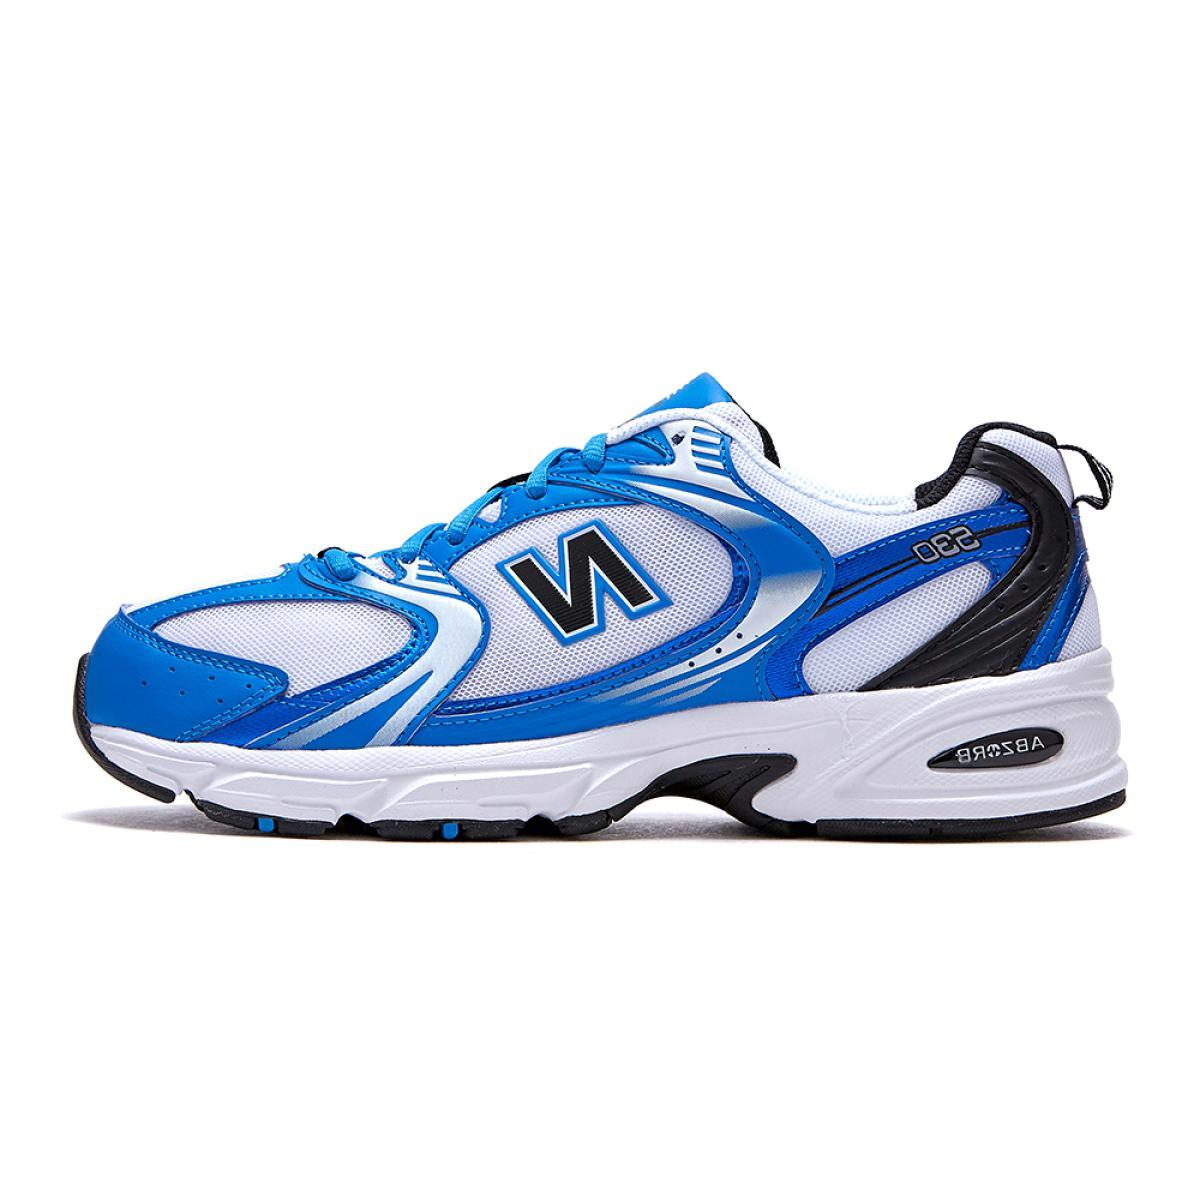 Details about [New Balance] 530 Retro Running Shoes Sneakers -  White/Blue(MR530SB)